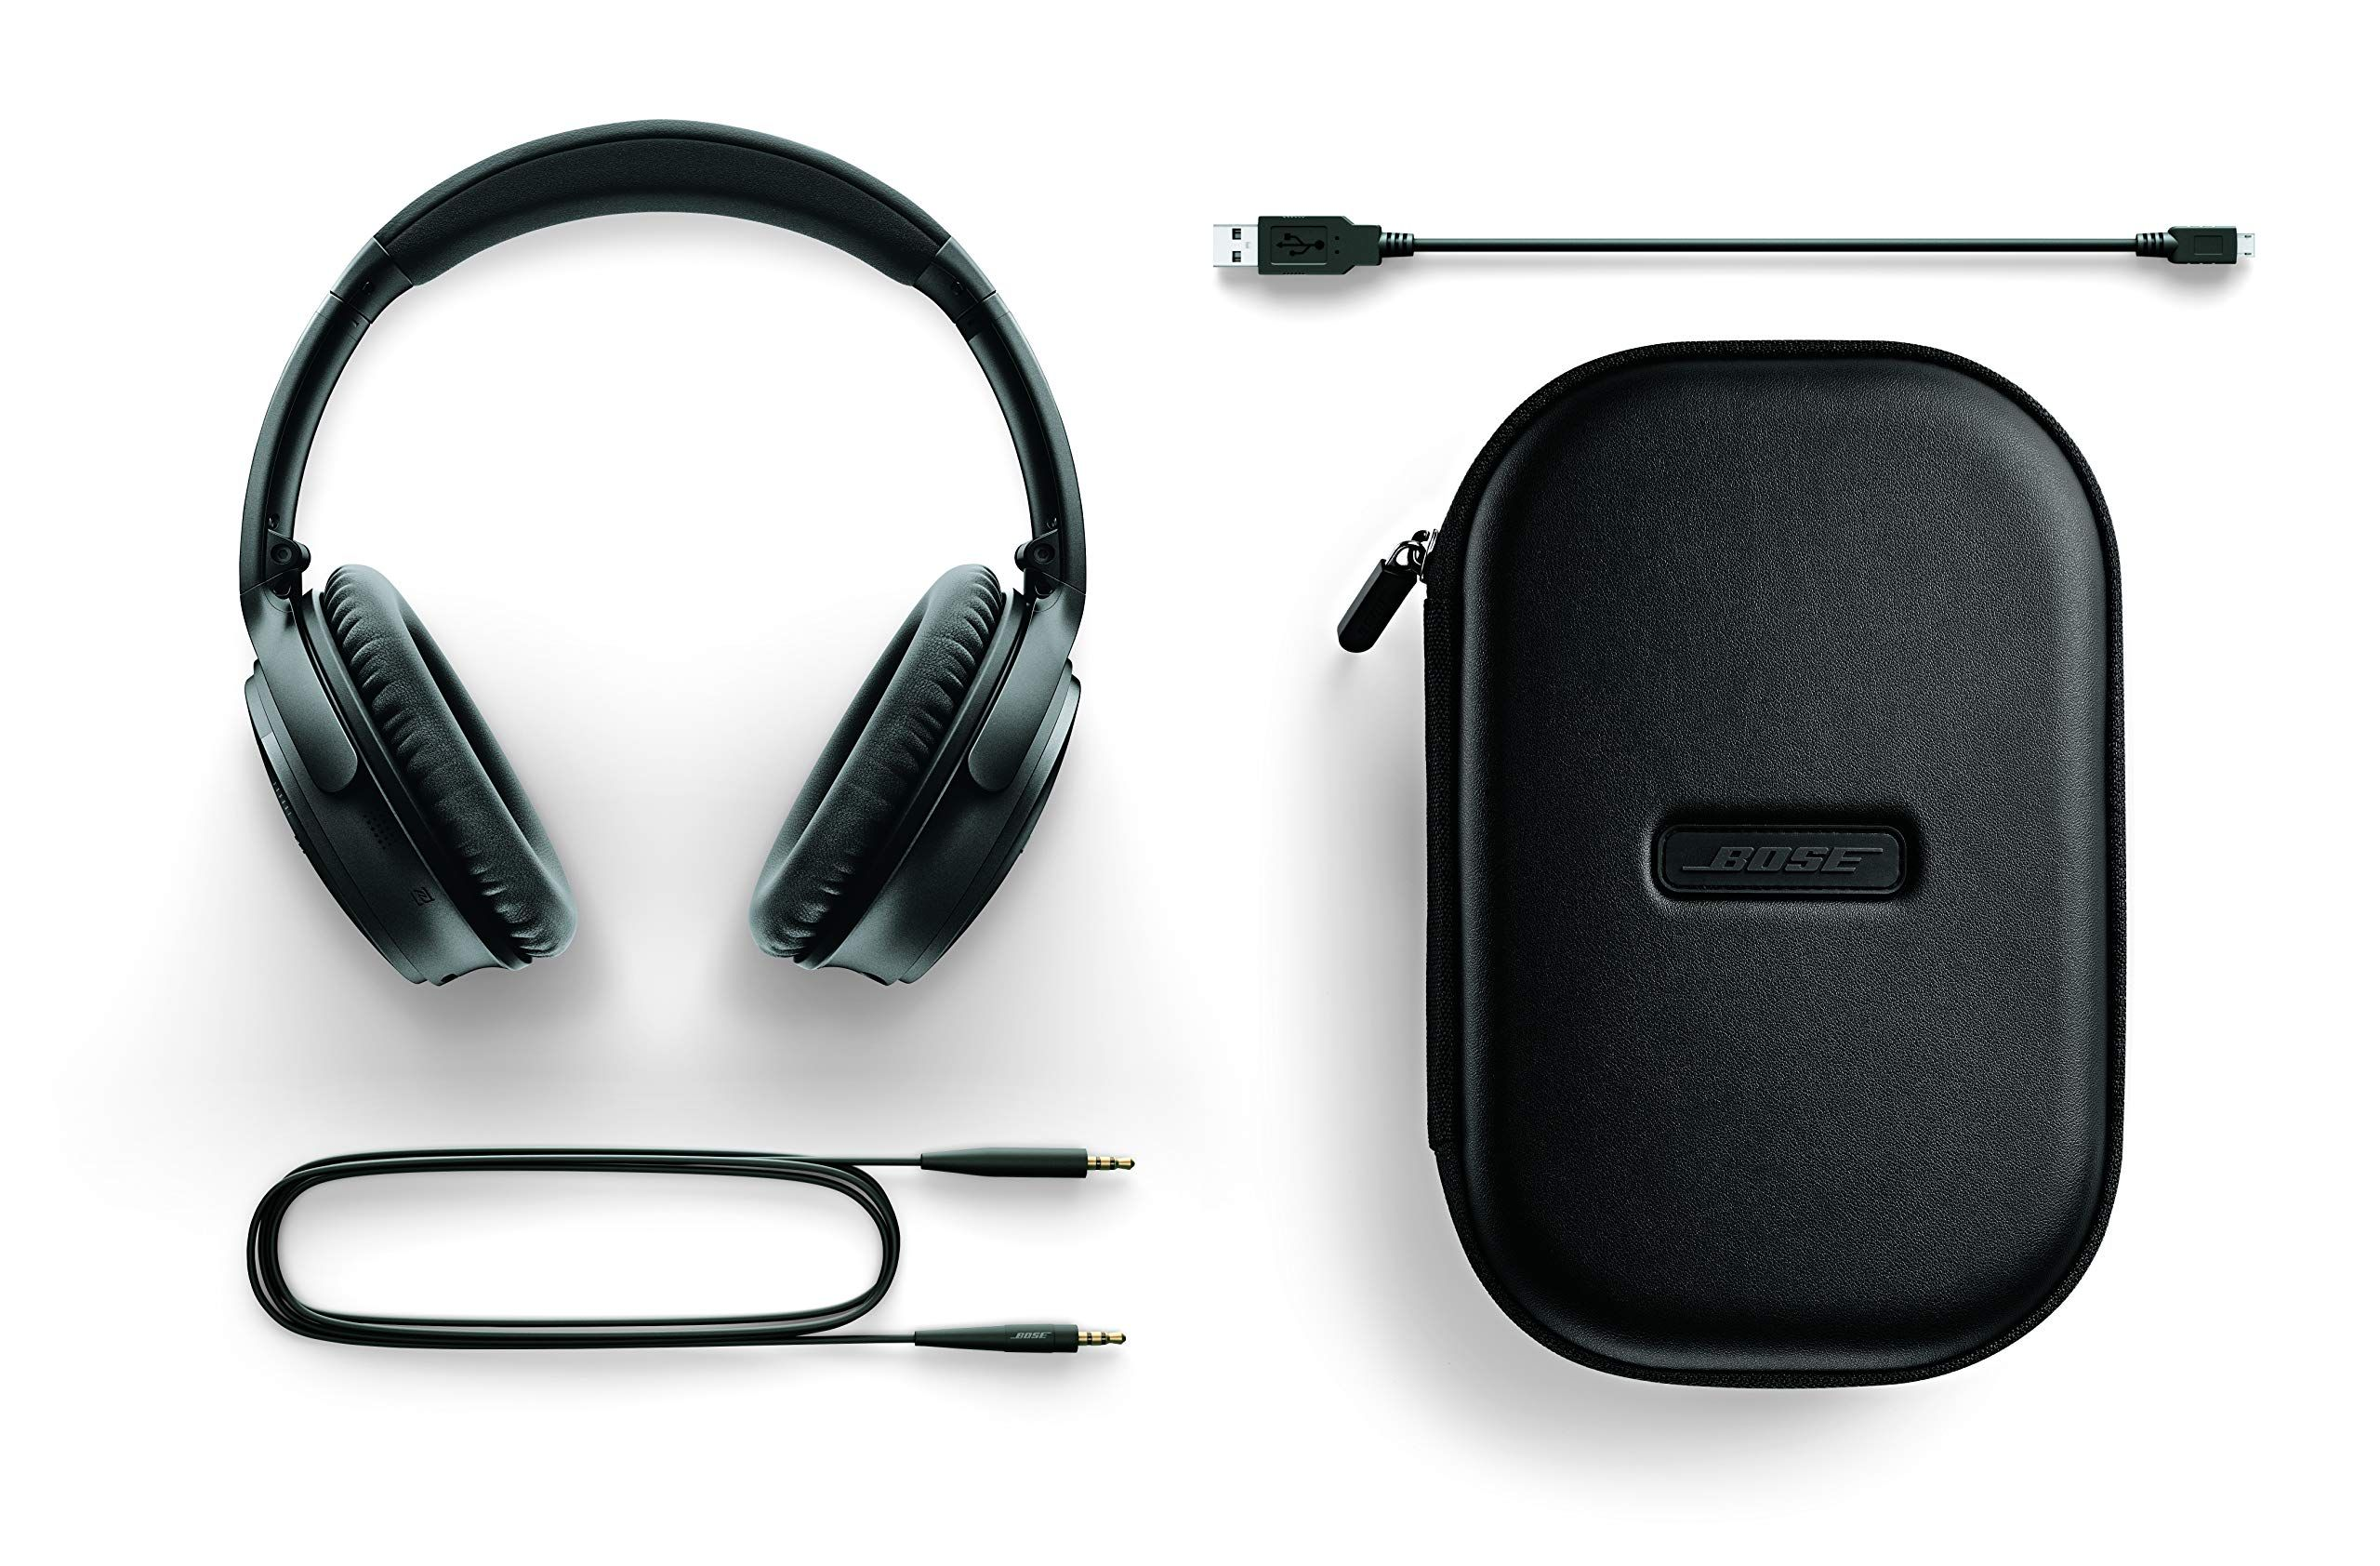 Bose Quietcomfort 35 Series Ii Wireless Headphones Noise Cancelling With Images Bluetooth Headphones Wireless Wireless Headphones Wireless Noise Cancelling Headphones